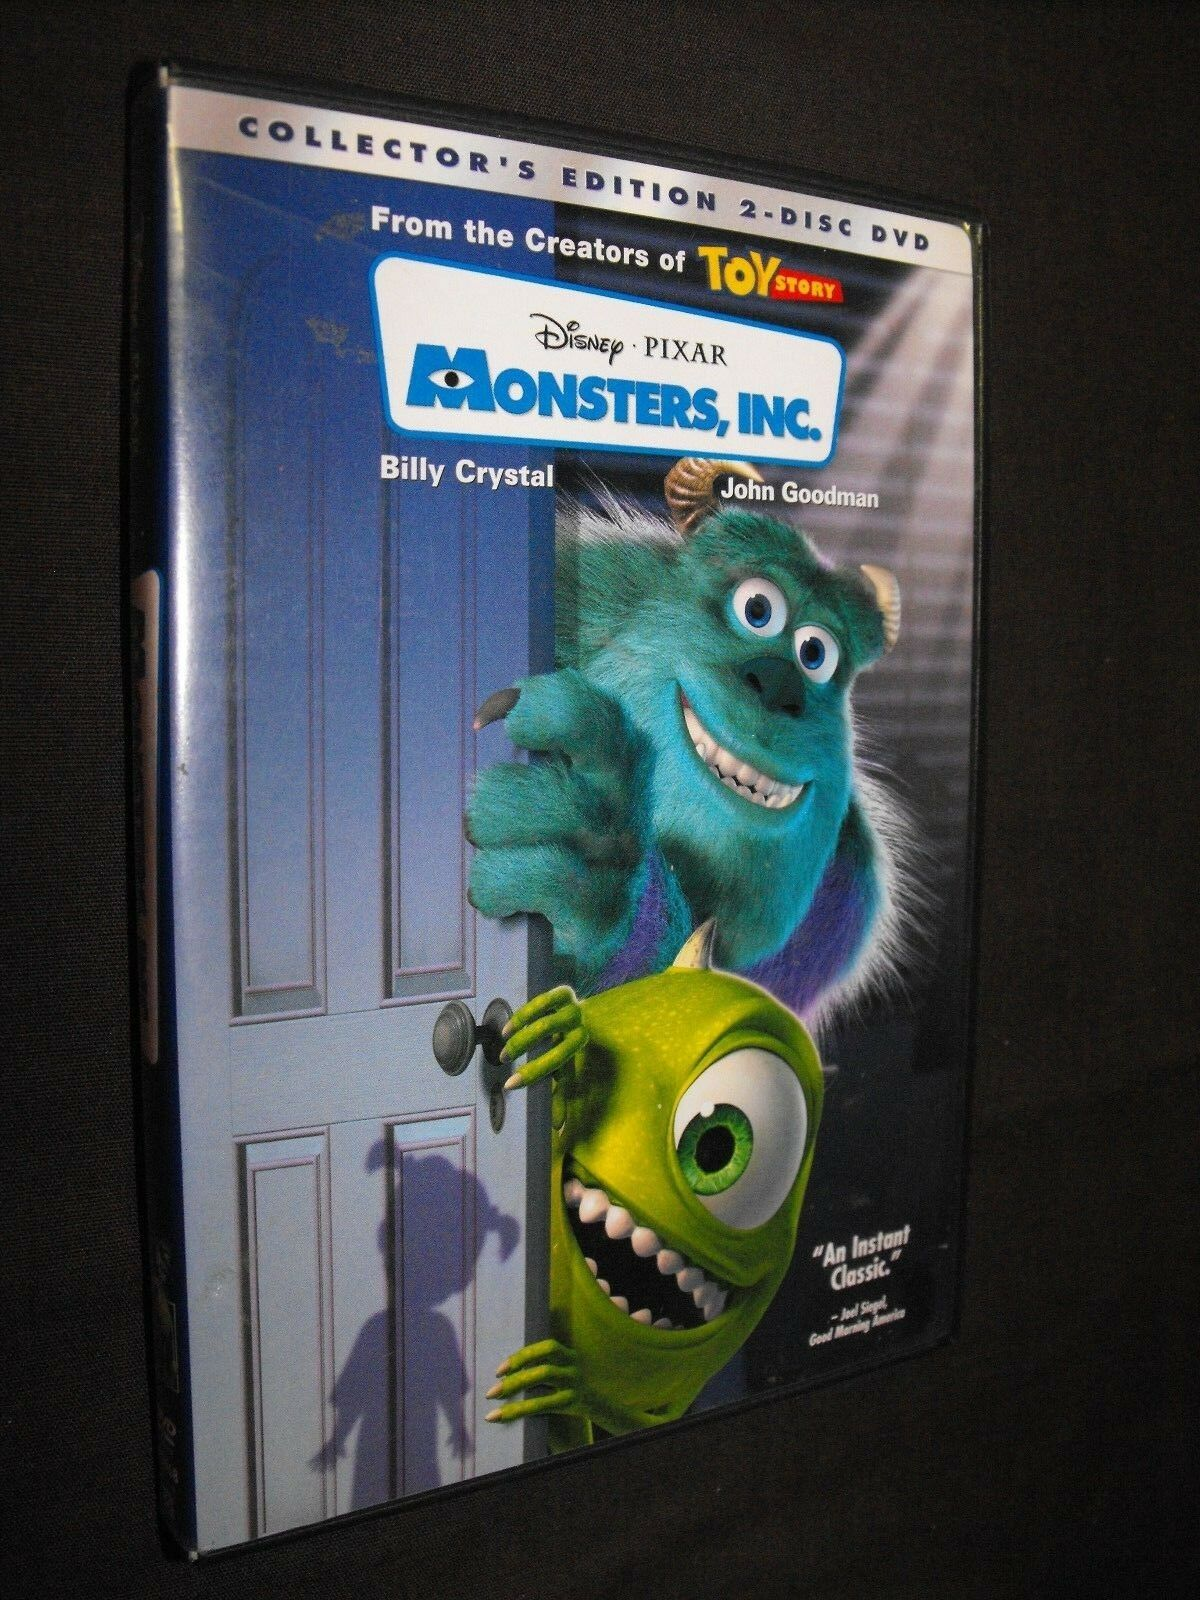 monsters inc dvd 2 disc set collectors edition clean plays great picclick ca. Black Bedroom Furniture Sets. Home Design Ideas